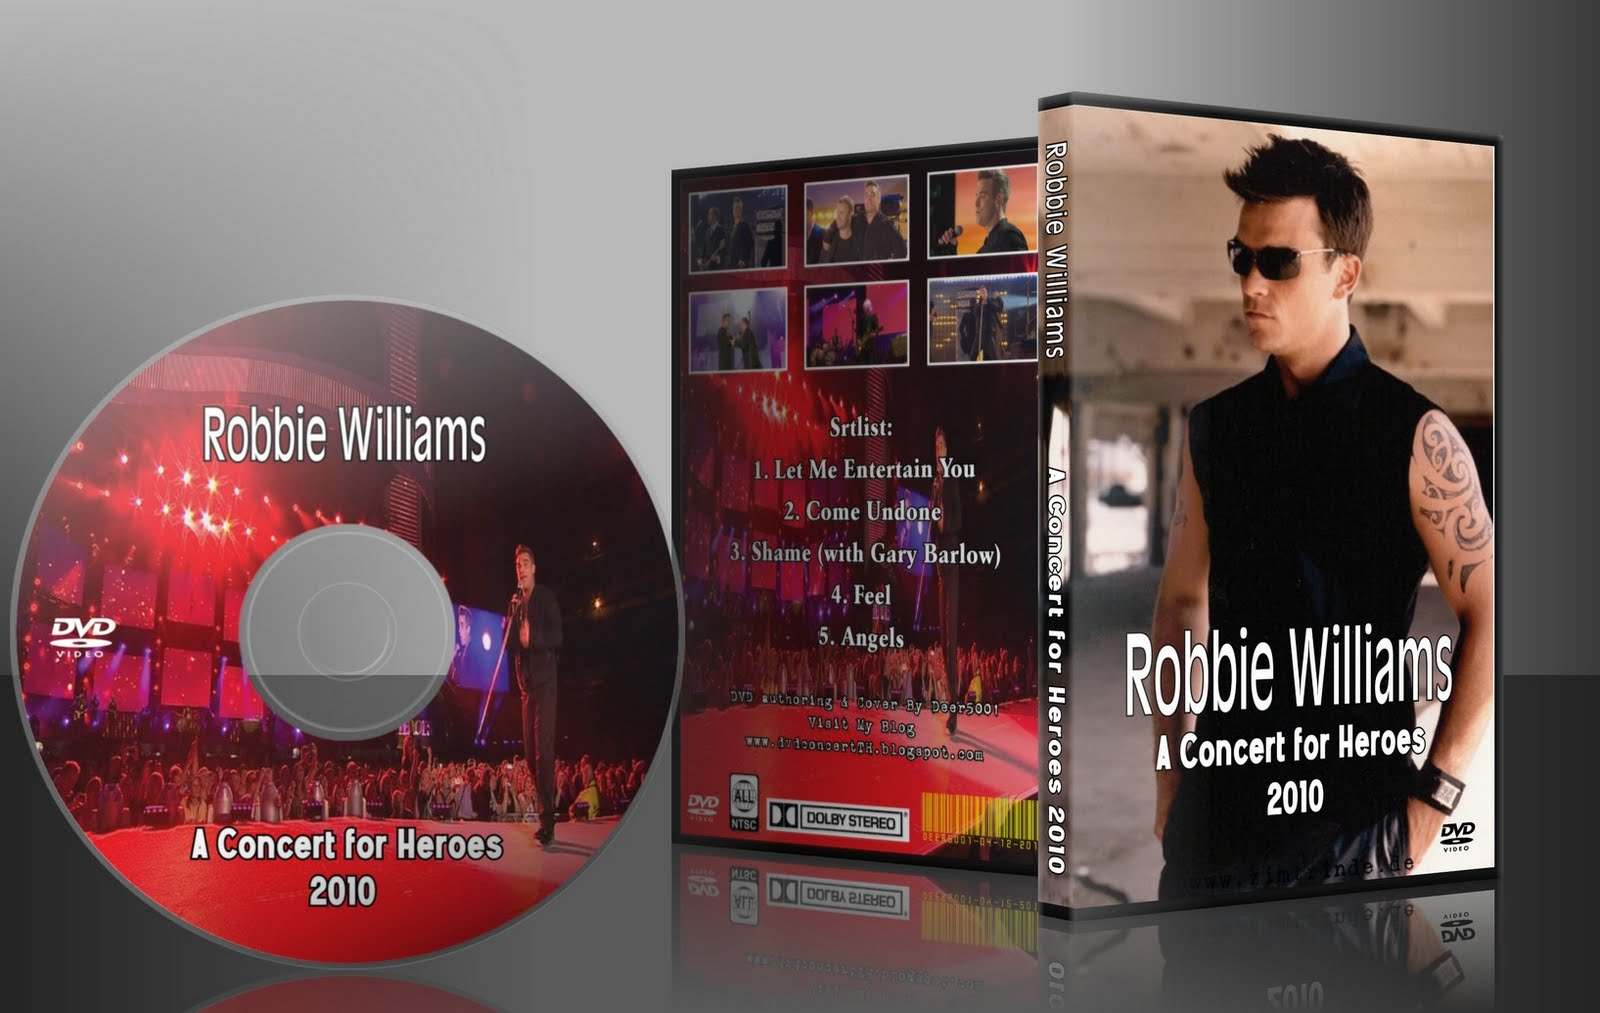 http://3.bp.blogspot.com/-6QjokkeEaqE/Tac339MBTEI/AAAAAAAACgY/-7qv0LPtmGo/s1600/DVD+Cover+For+Show+-+Robbie+Williams+-+A+Concert+for+Heroes+2010.jpg